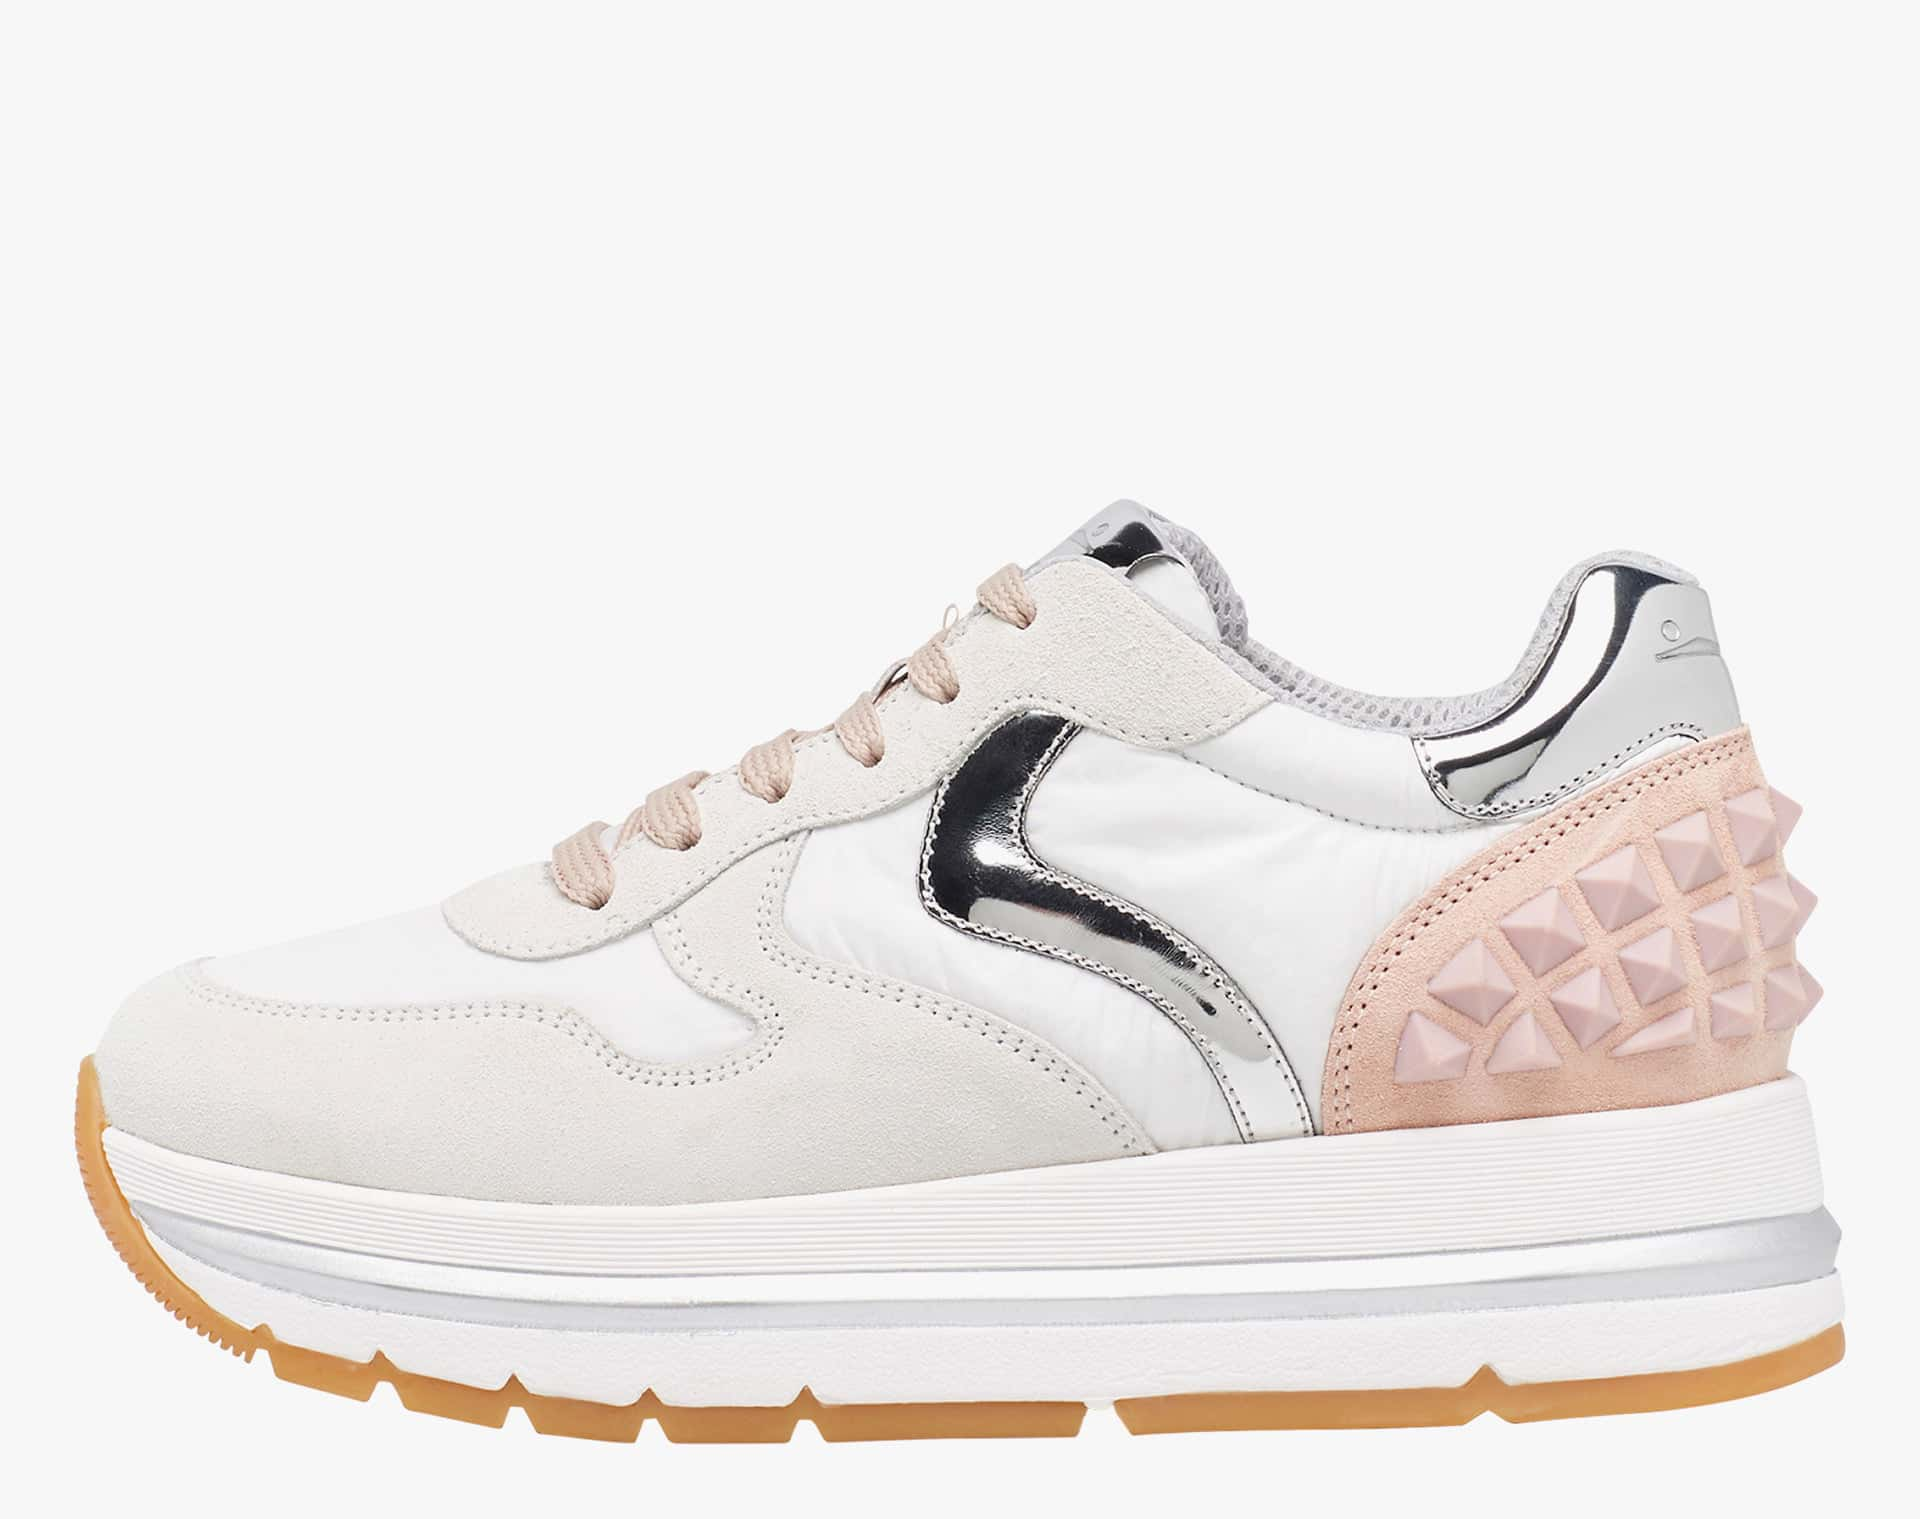 MARAN S - Sneaker in suede and technical fabric - White-Pink